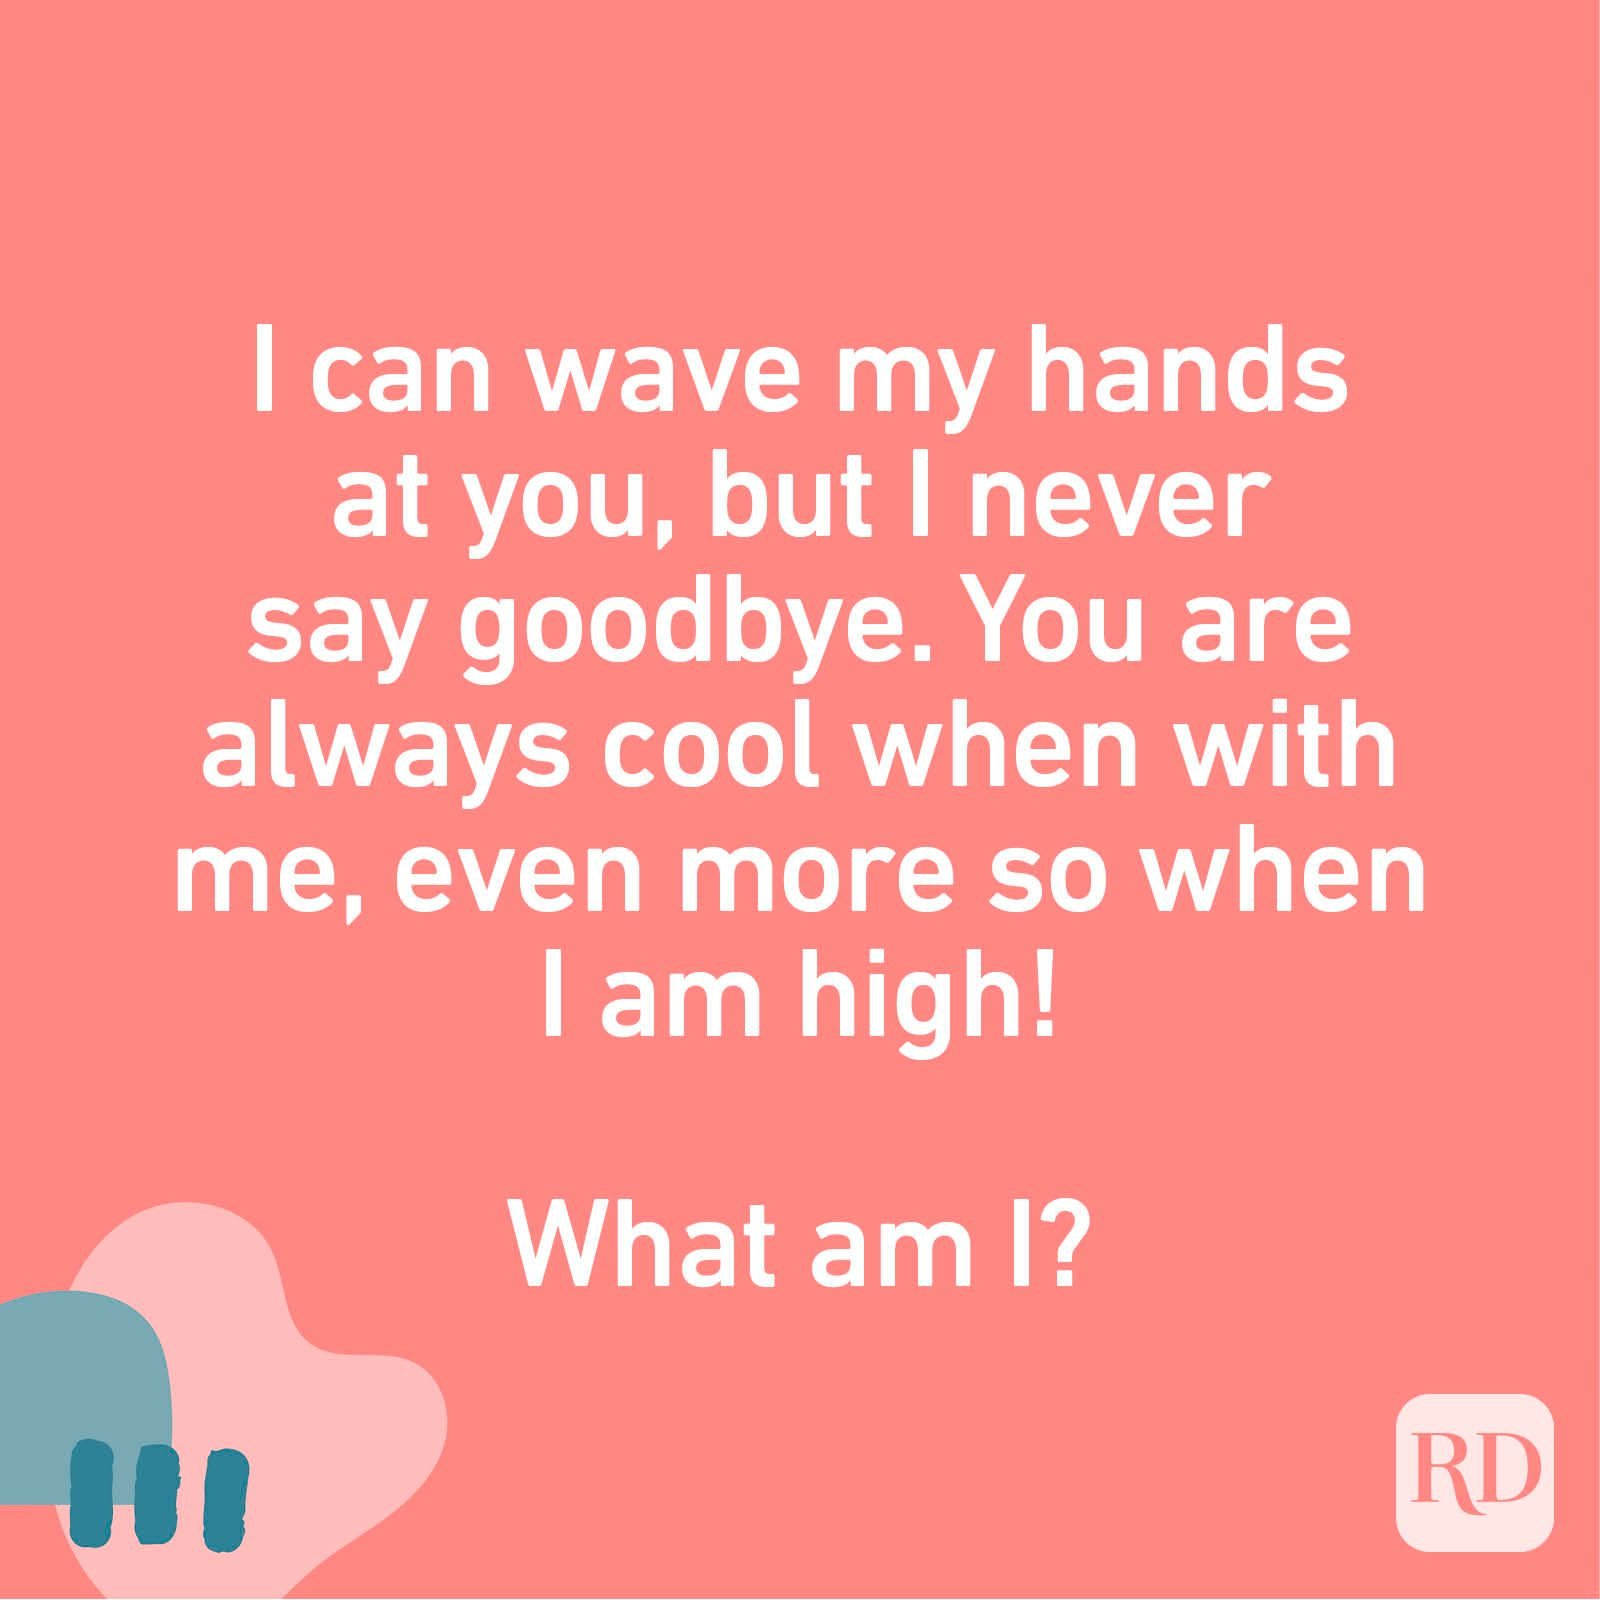 I can wave my hands at you, but I never say goodbye. You are always cool when with me, even more so when I am high! What am I?